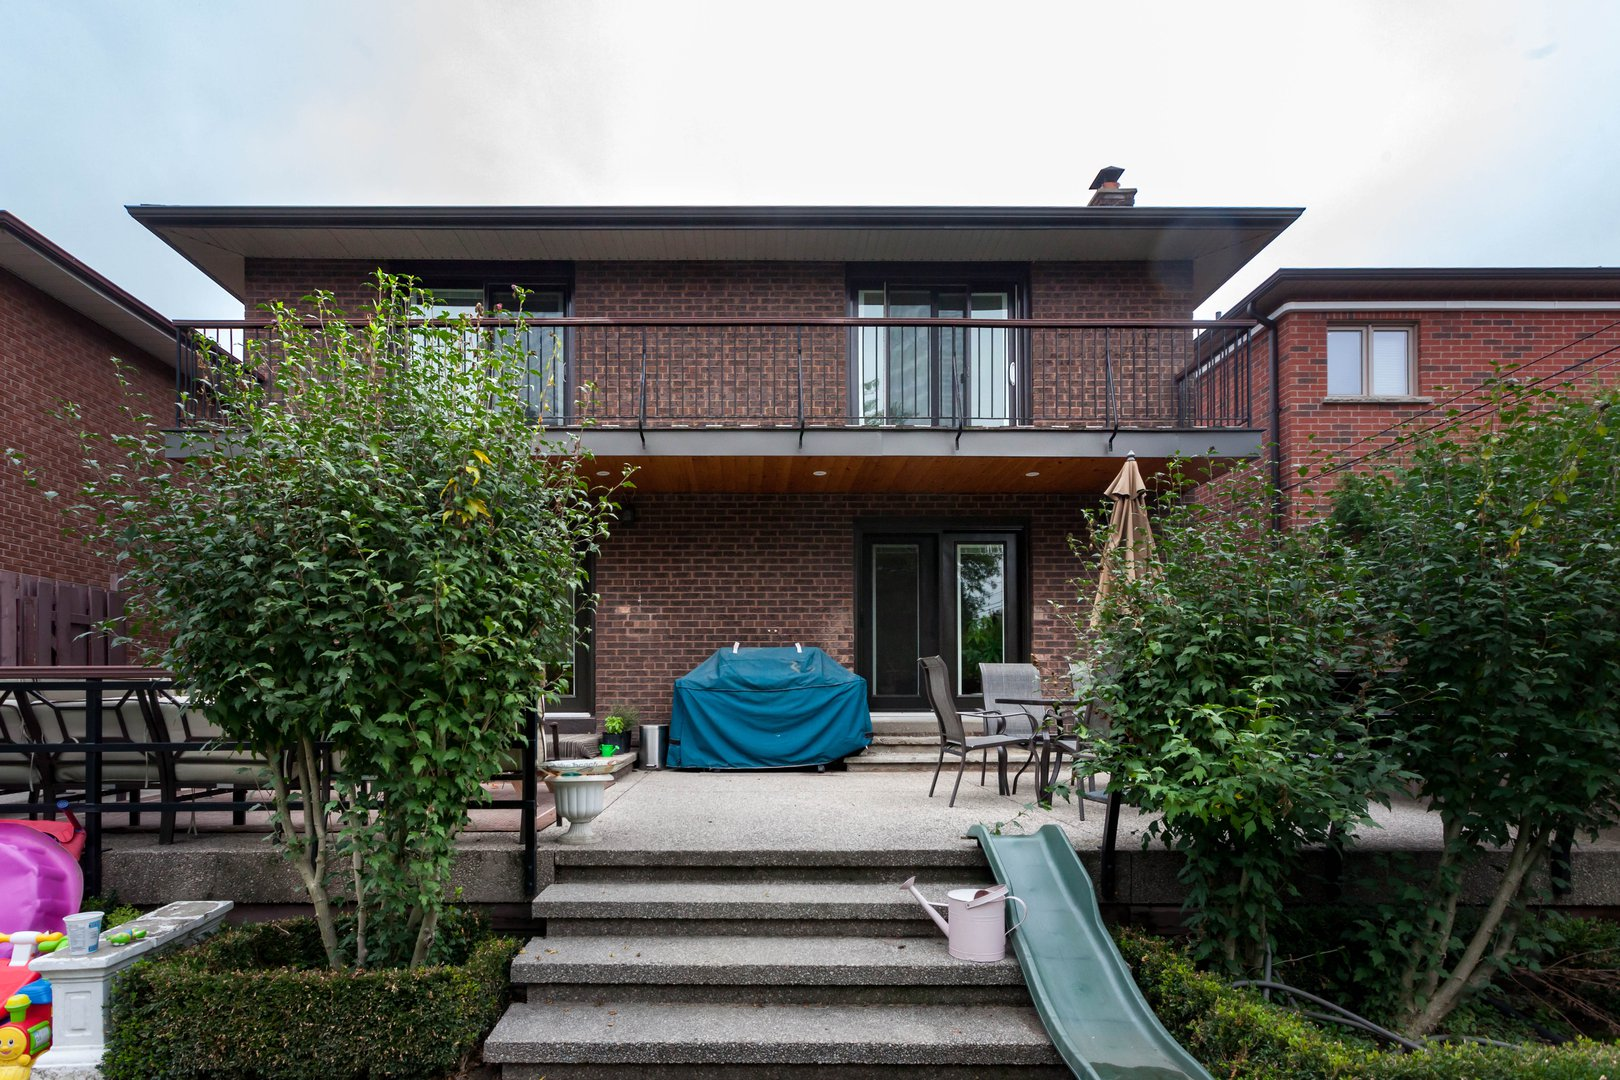 House for rent at 84 Laurel Avenue, Etobicoke, ON in oriental style. This is the front of the house with deck.